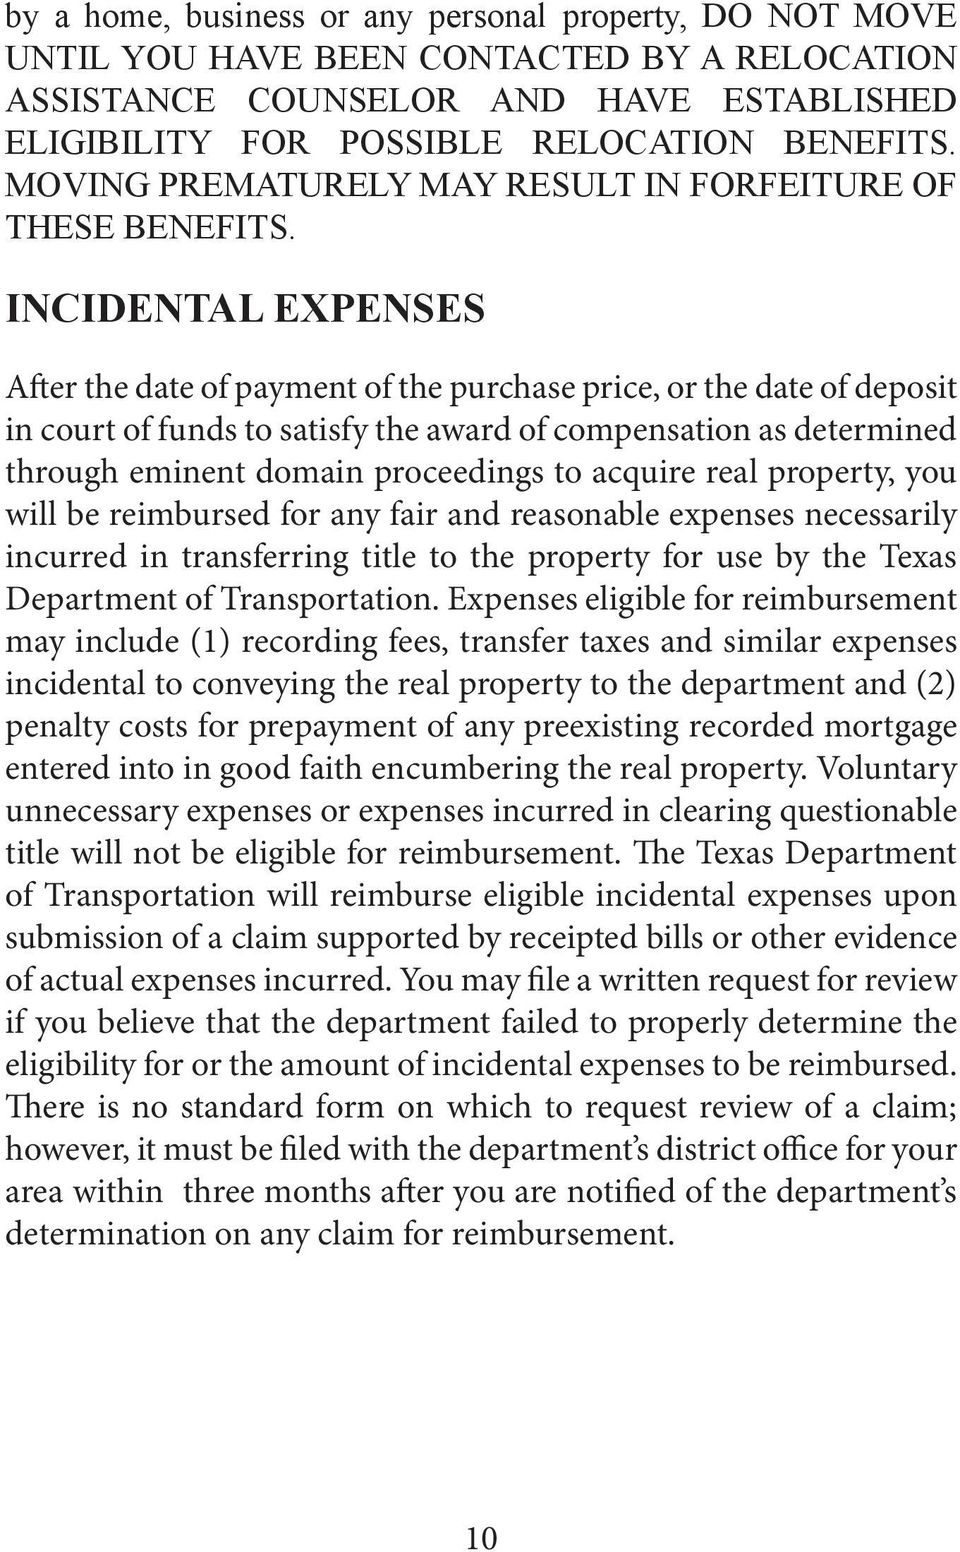 INCIDENTAL EXPENSES After the date of payment of the purchase price, or the date of deposit in court of funds to satisfy the award of compensation as determined through eminent domain proceedings to